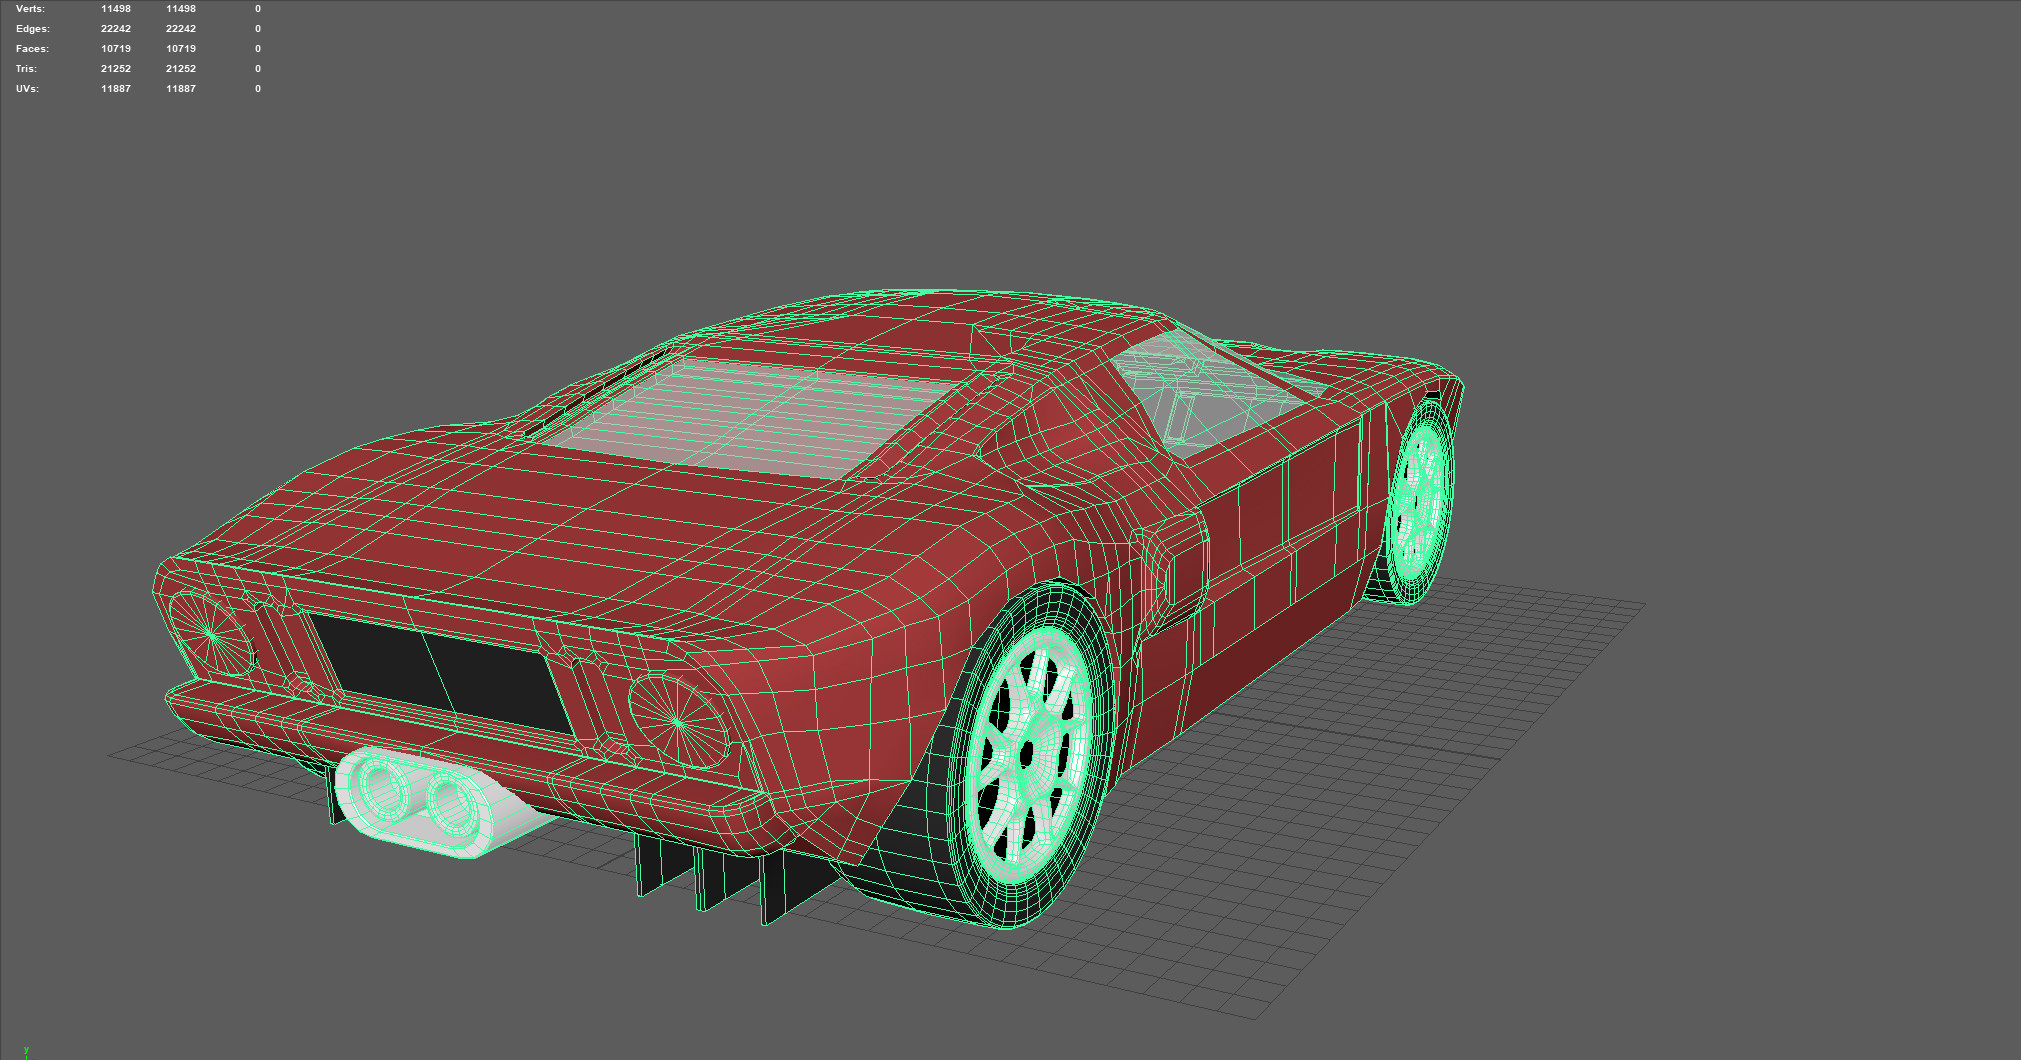 All in all, Im very happy with both the shape and the topology in the low poly model.